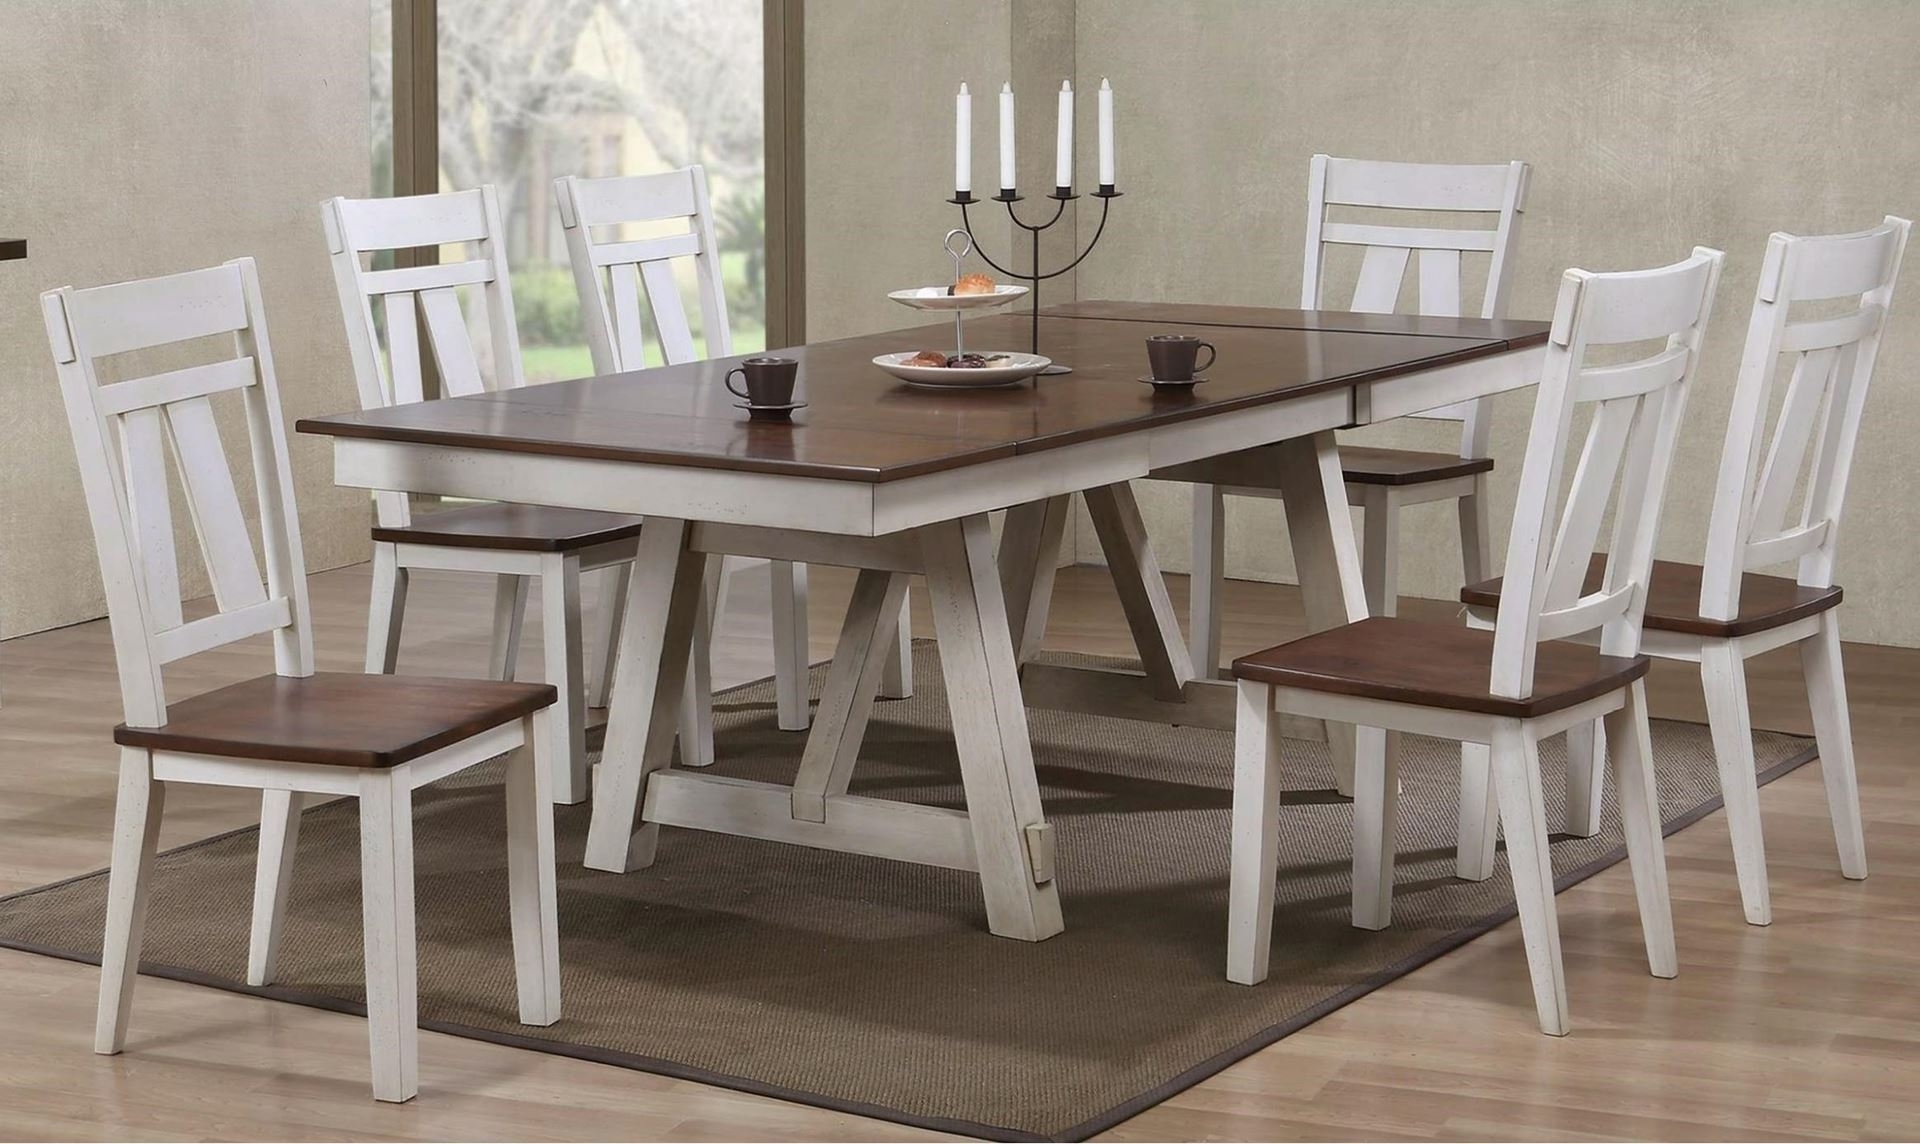 Most Popular Farm Dining Tables With Regard To  (View 9 of 25)